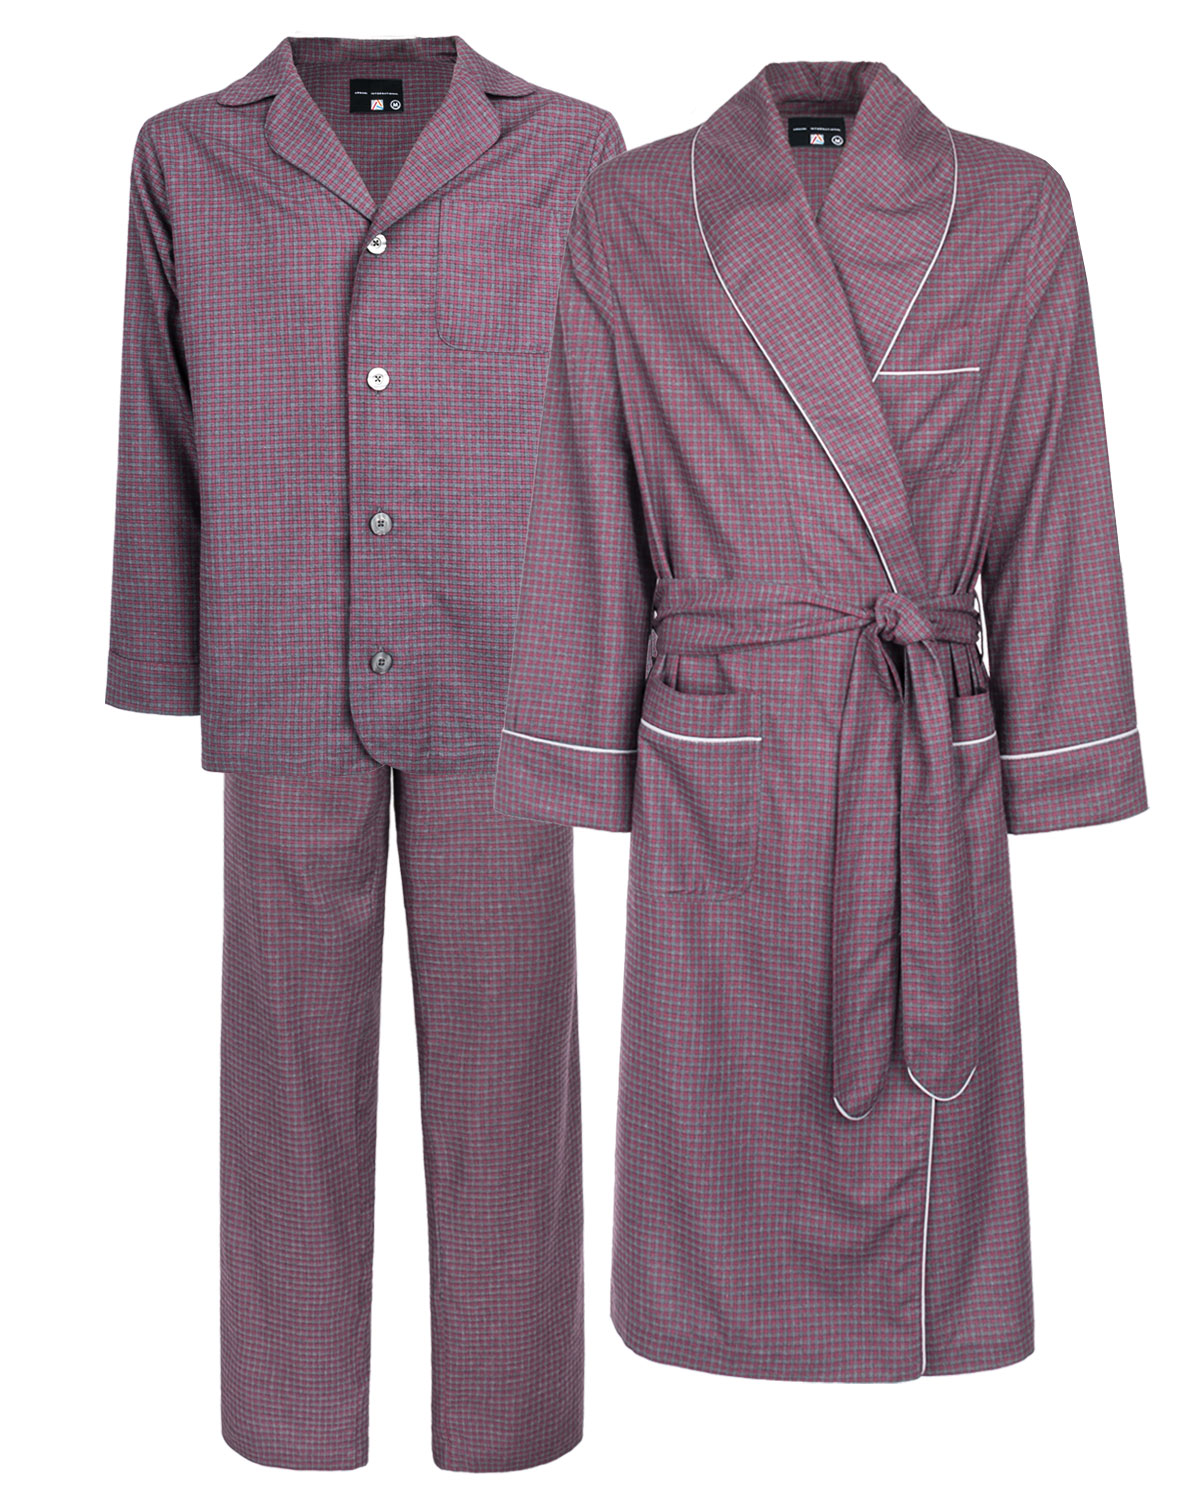 Pajamas Dressing Gown Set Brushed Thermal Checked Grey-Burgundy, Sophestique Immense